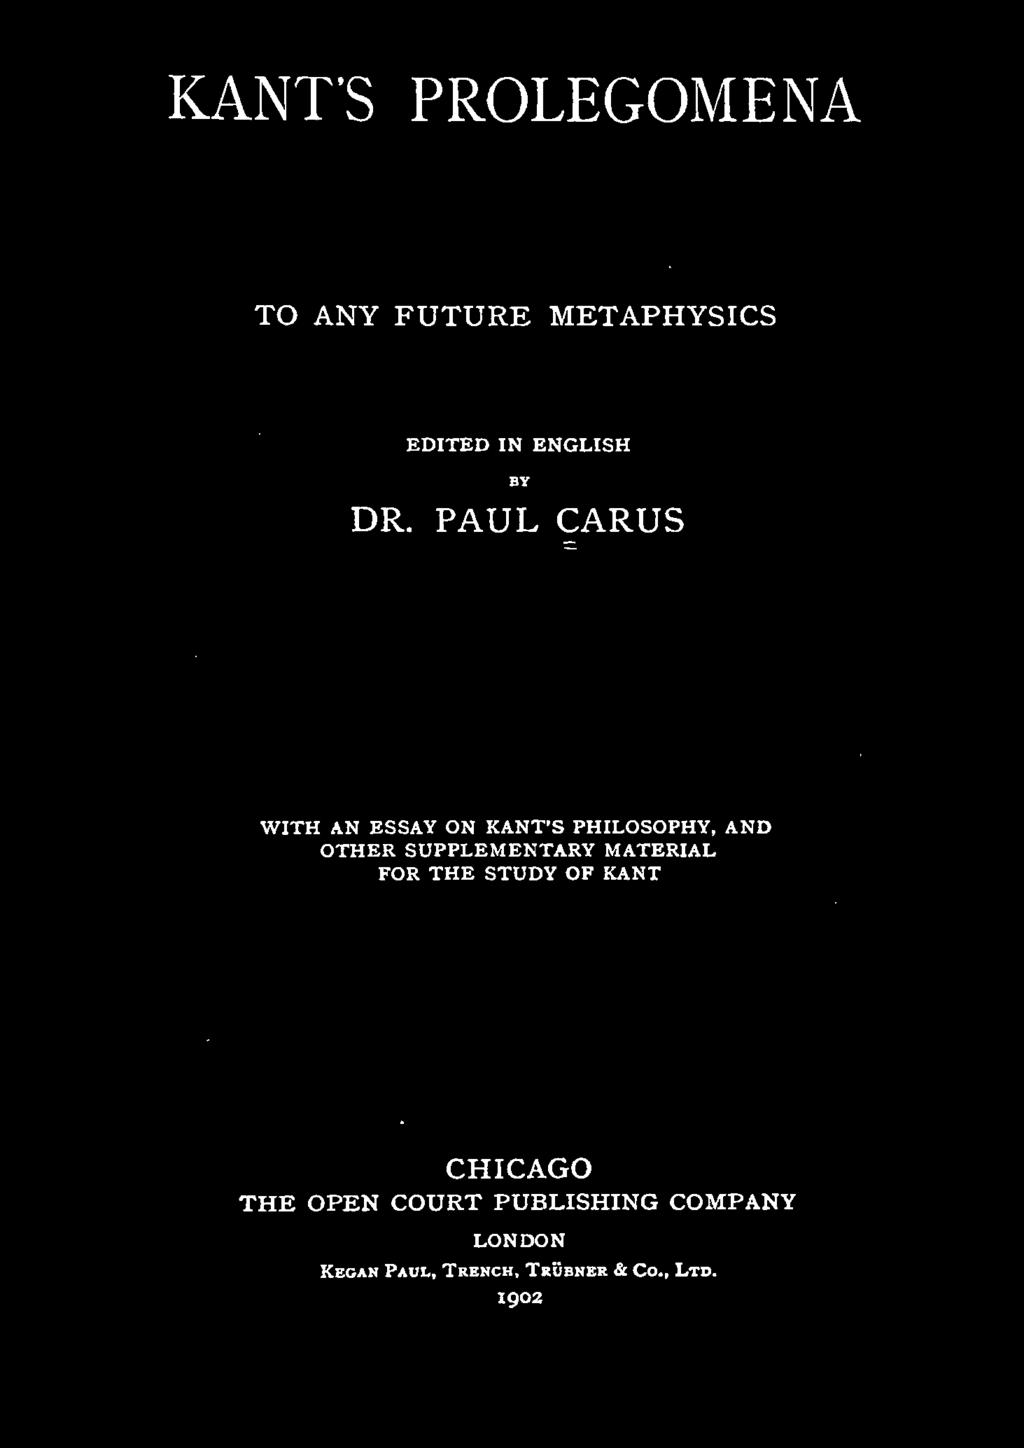 SUPPLEMENTARY MATERIAL FOR THE STUDY OF KANT CHICAGO THE OPEN